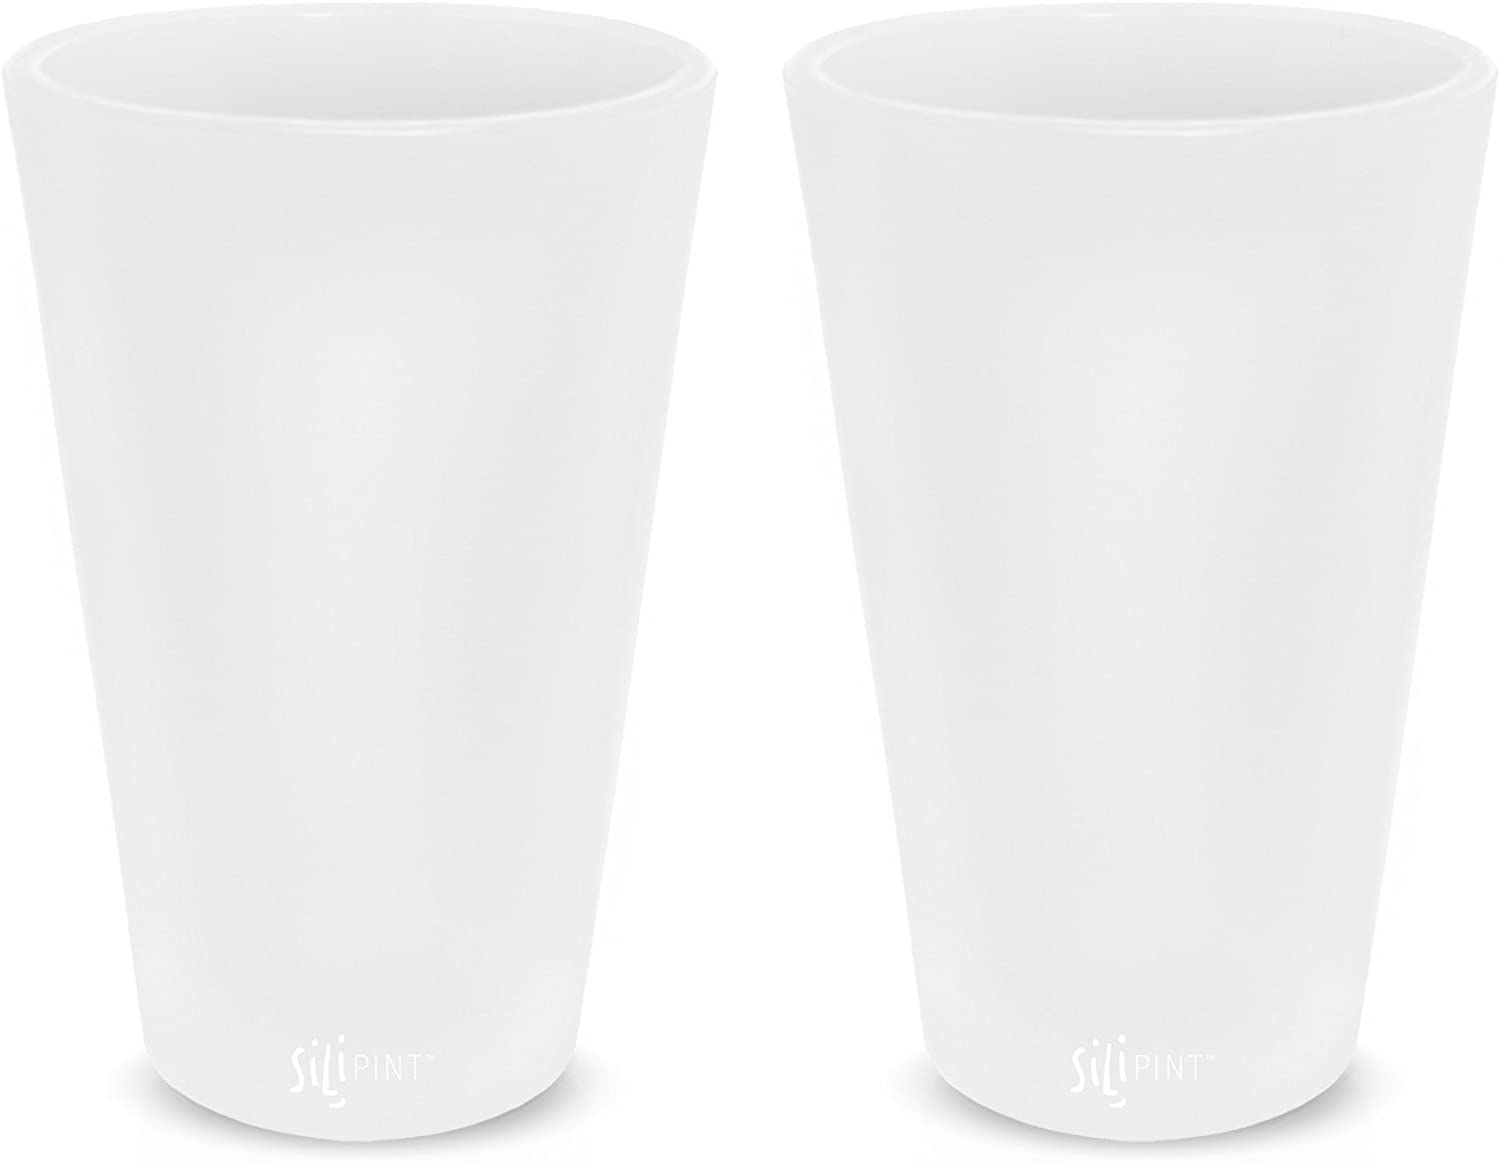 Silipint Silicone Pint Glass, Patented, Shatter-proof, Unbreakable Silicone Cup Drinkware (2-Pack, Frosted White)